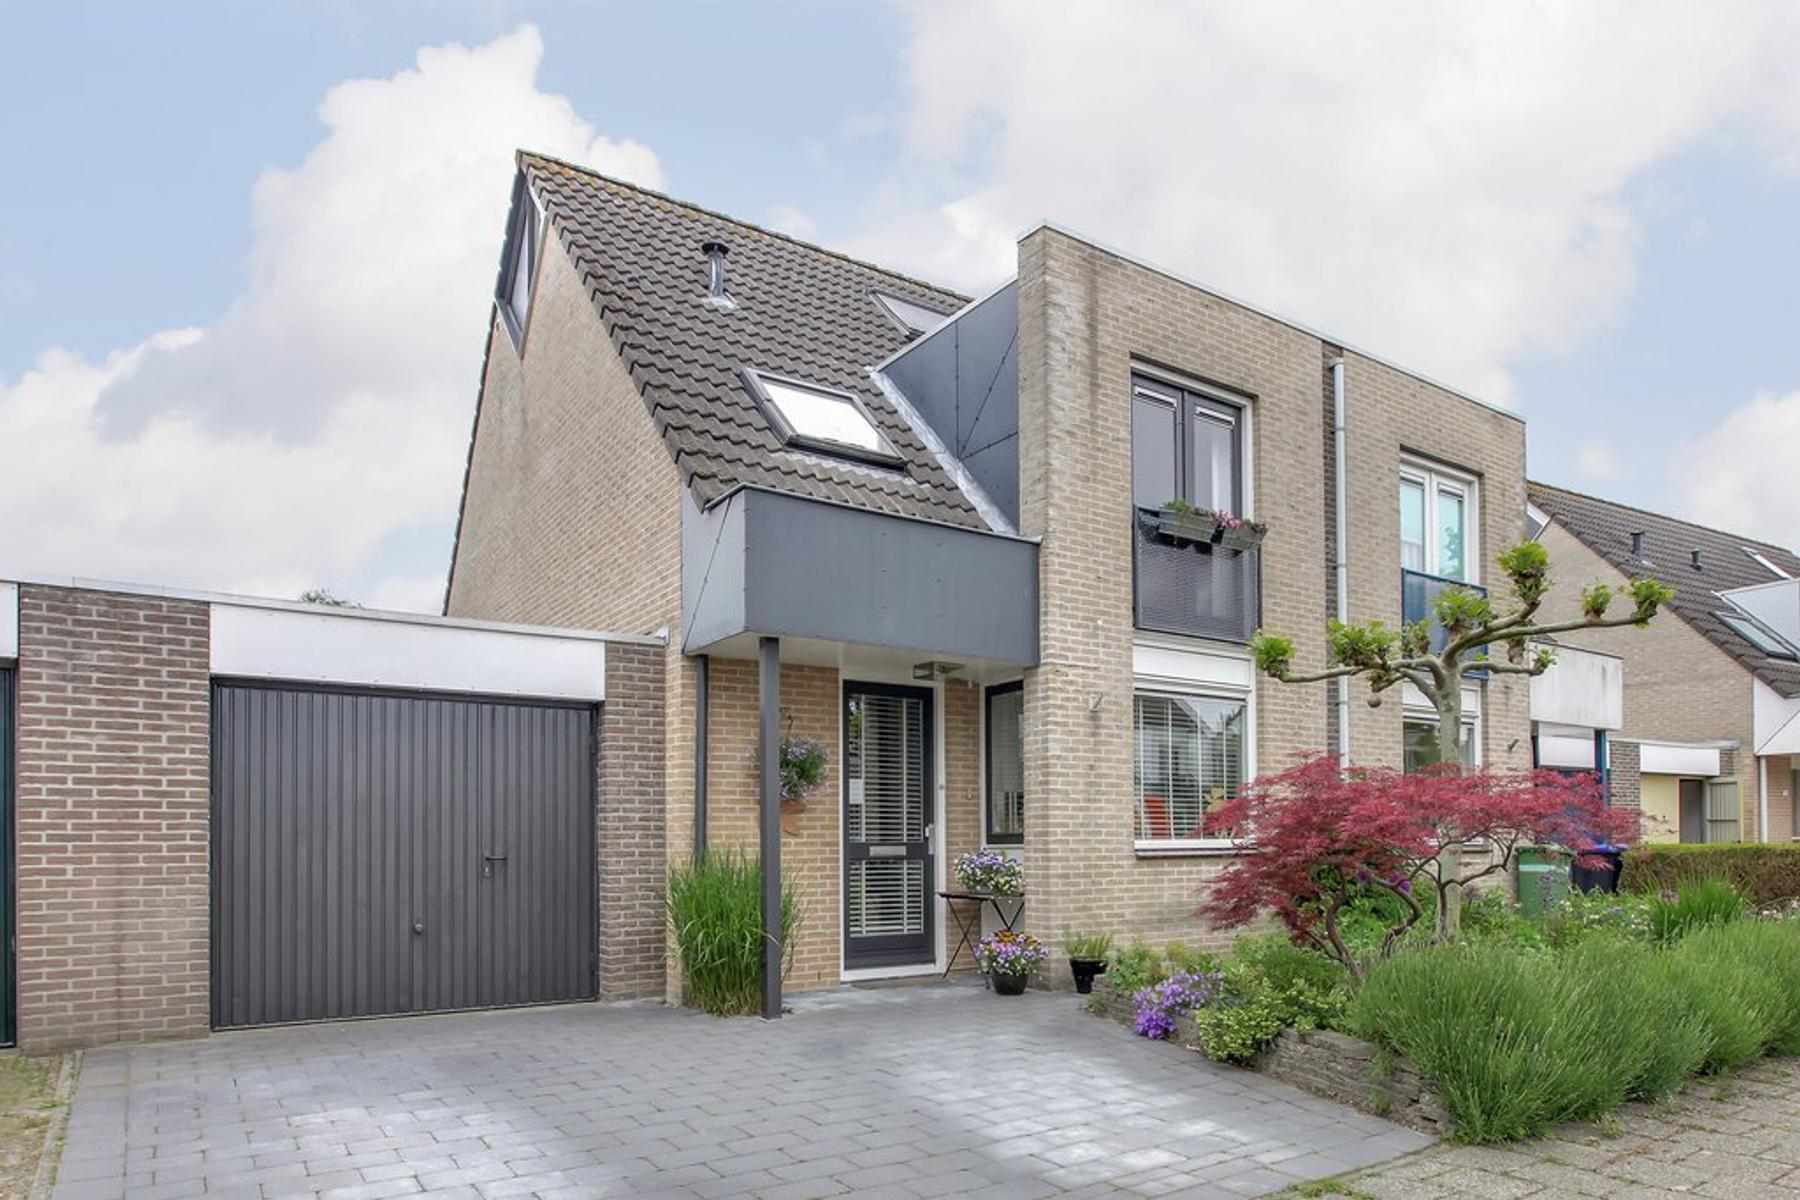 Hazeleger 22 in Zeewolde 3892 WK